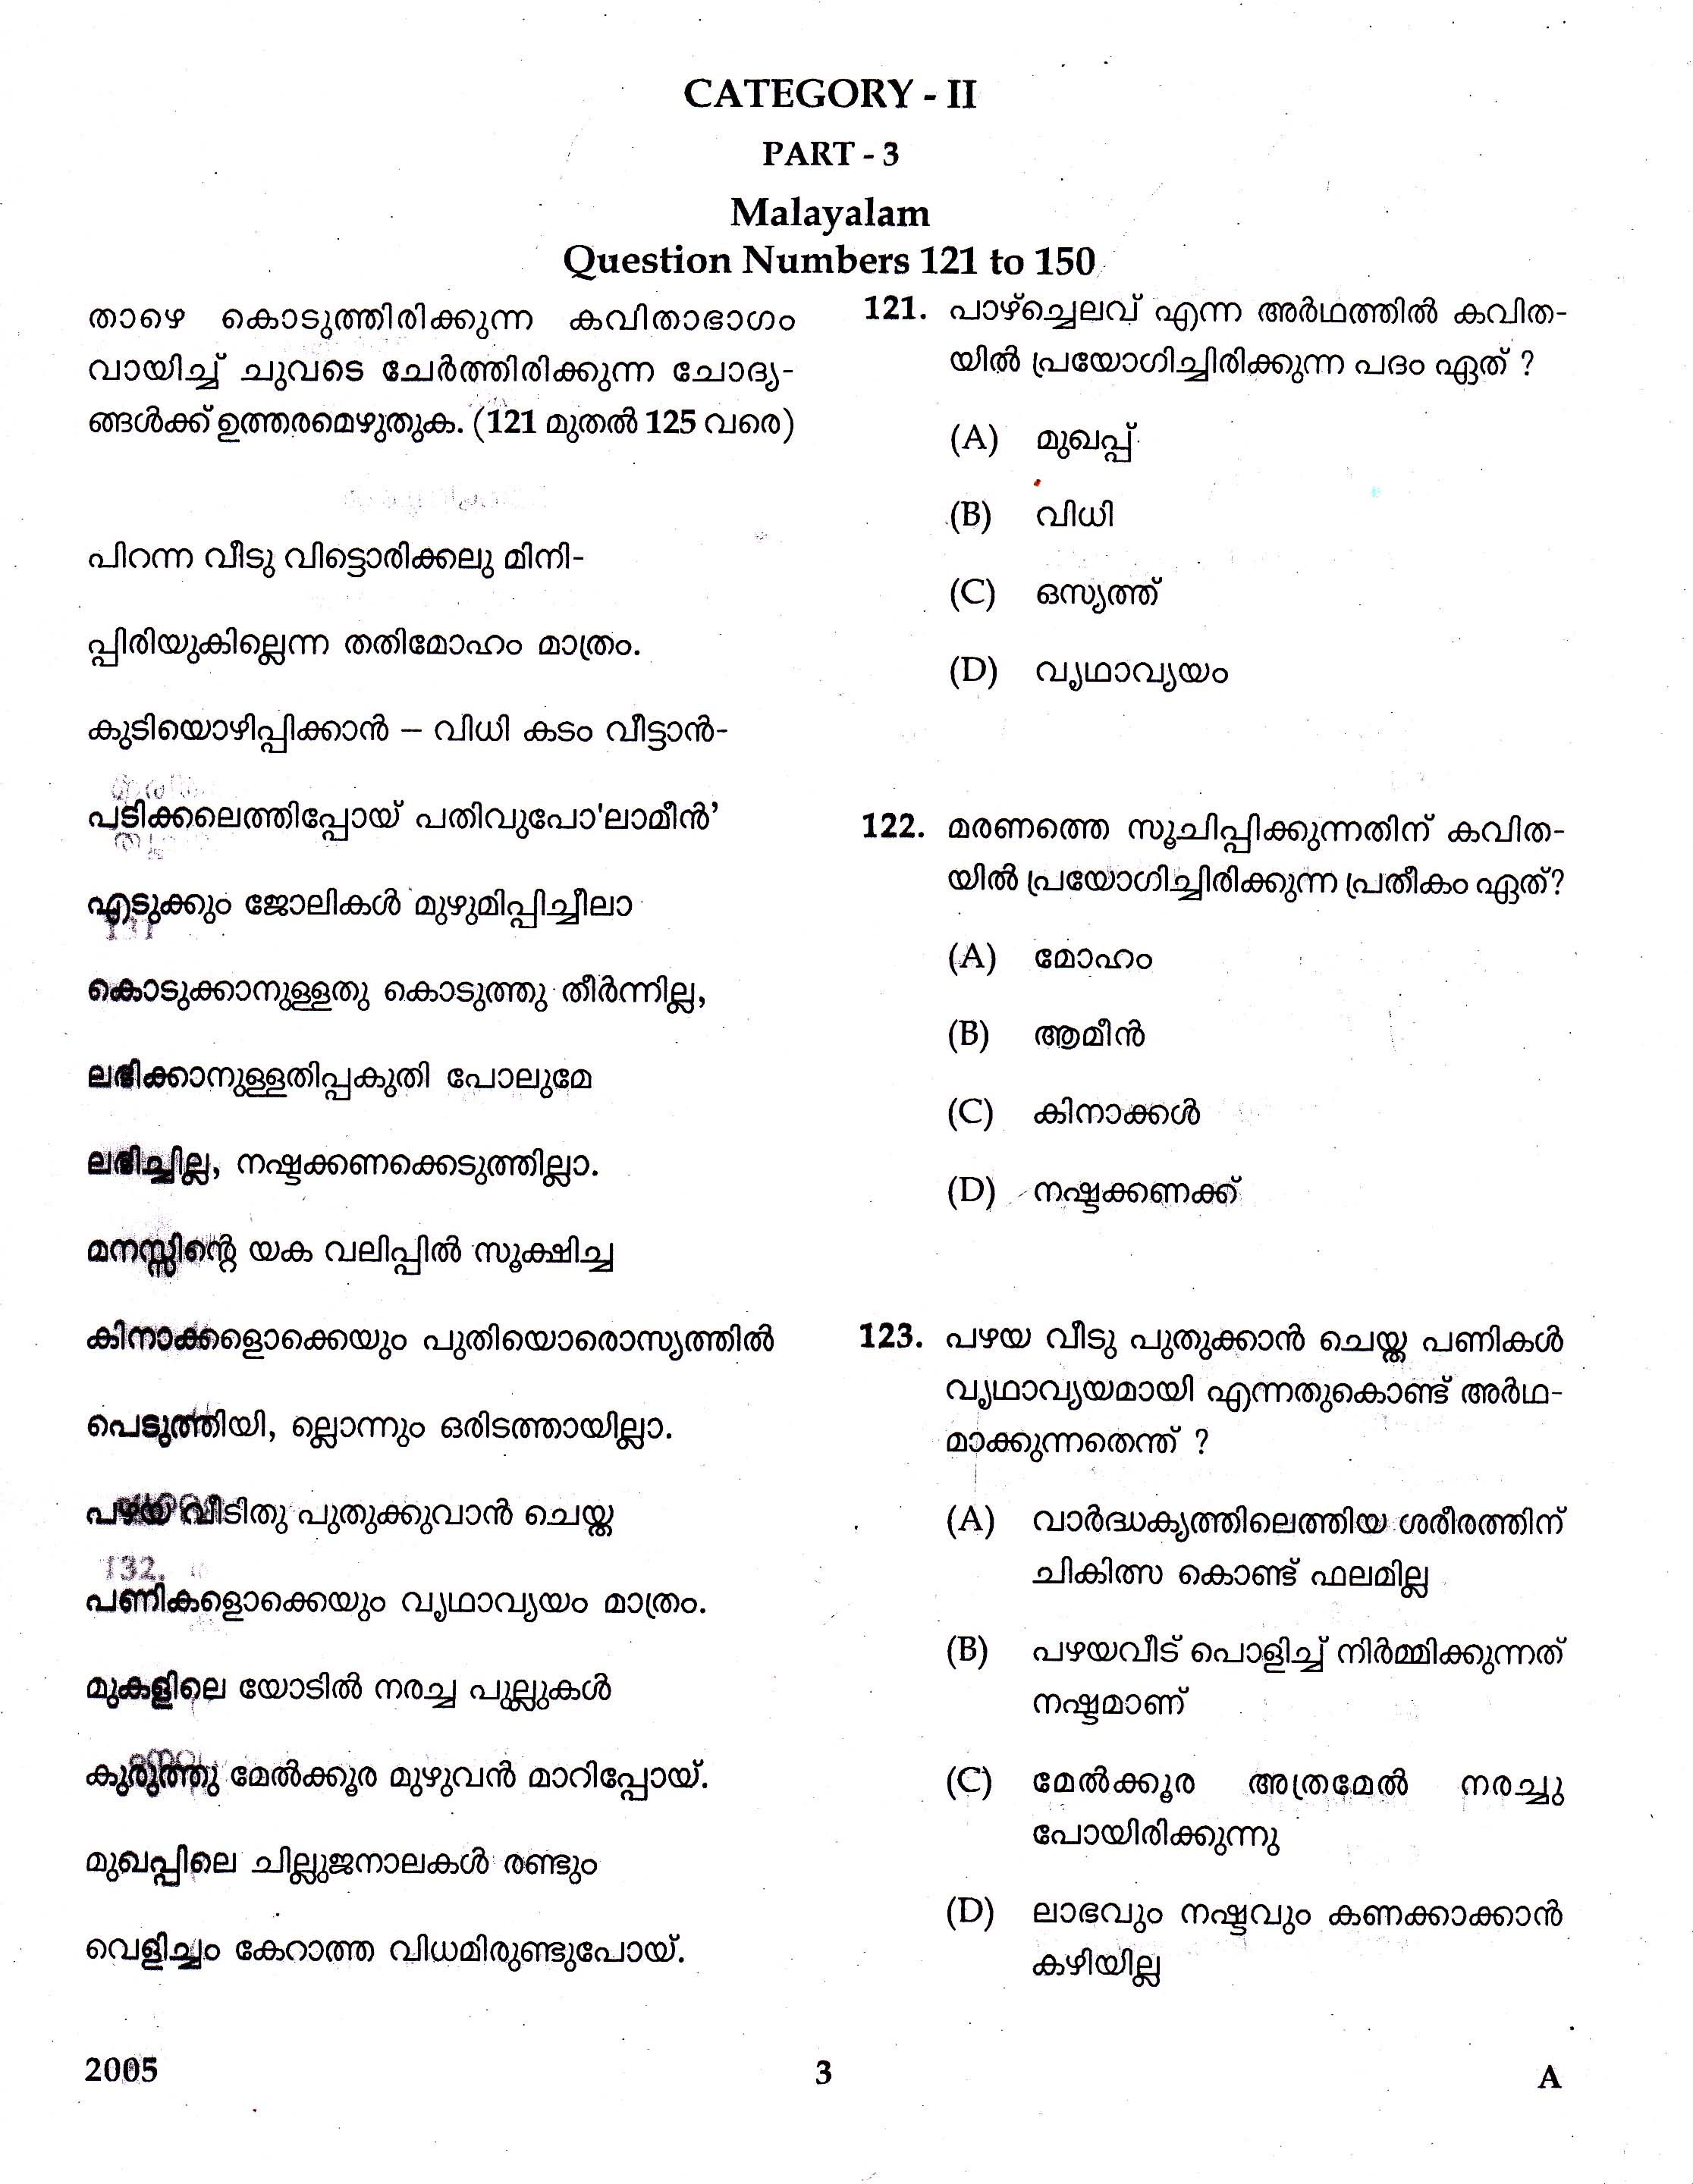 KTET Category II Part 3 Malayalam Question Paper with Answers